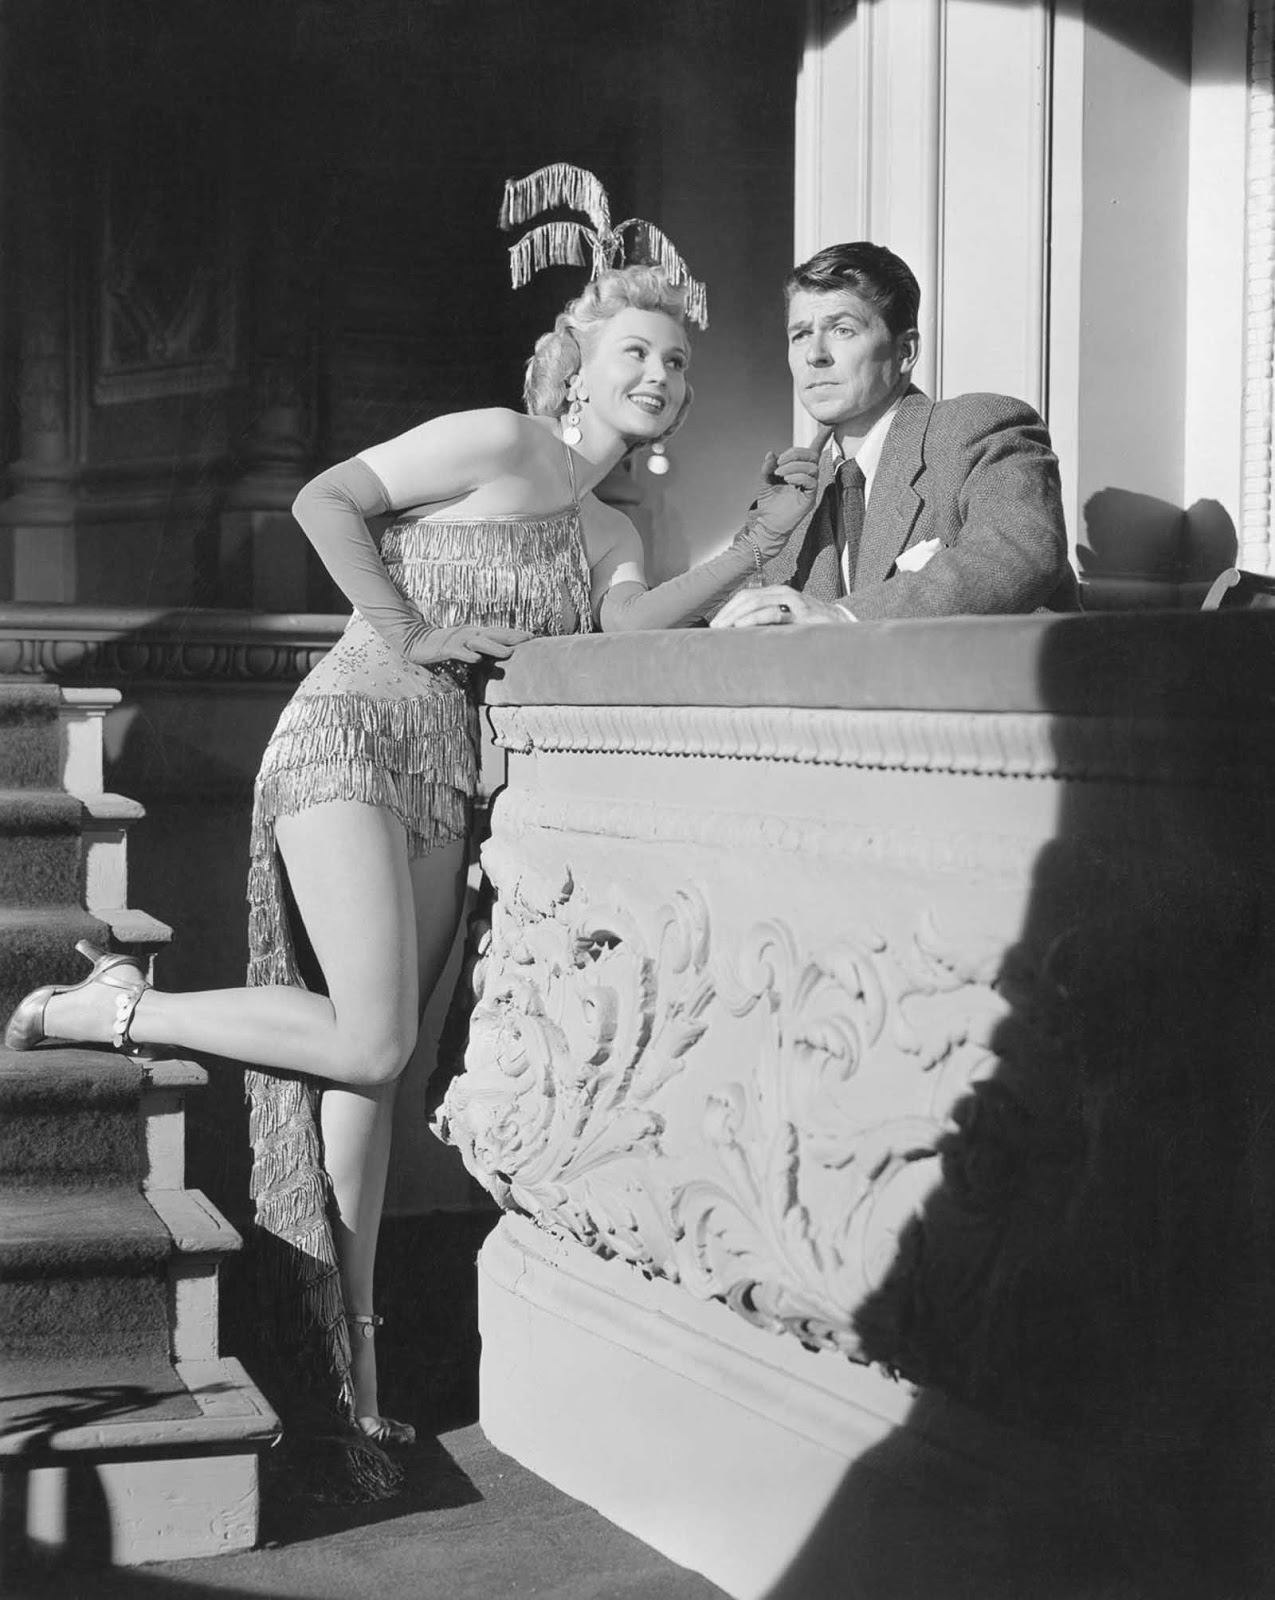 Reagan y Virginia Mayo se presentan en She's Working Her Way Through College. 1952.